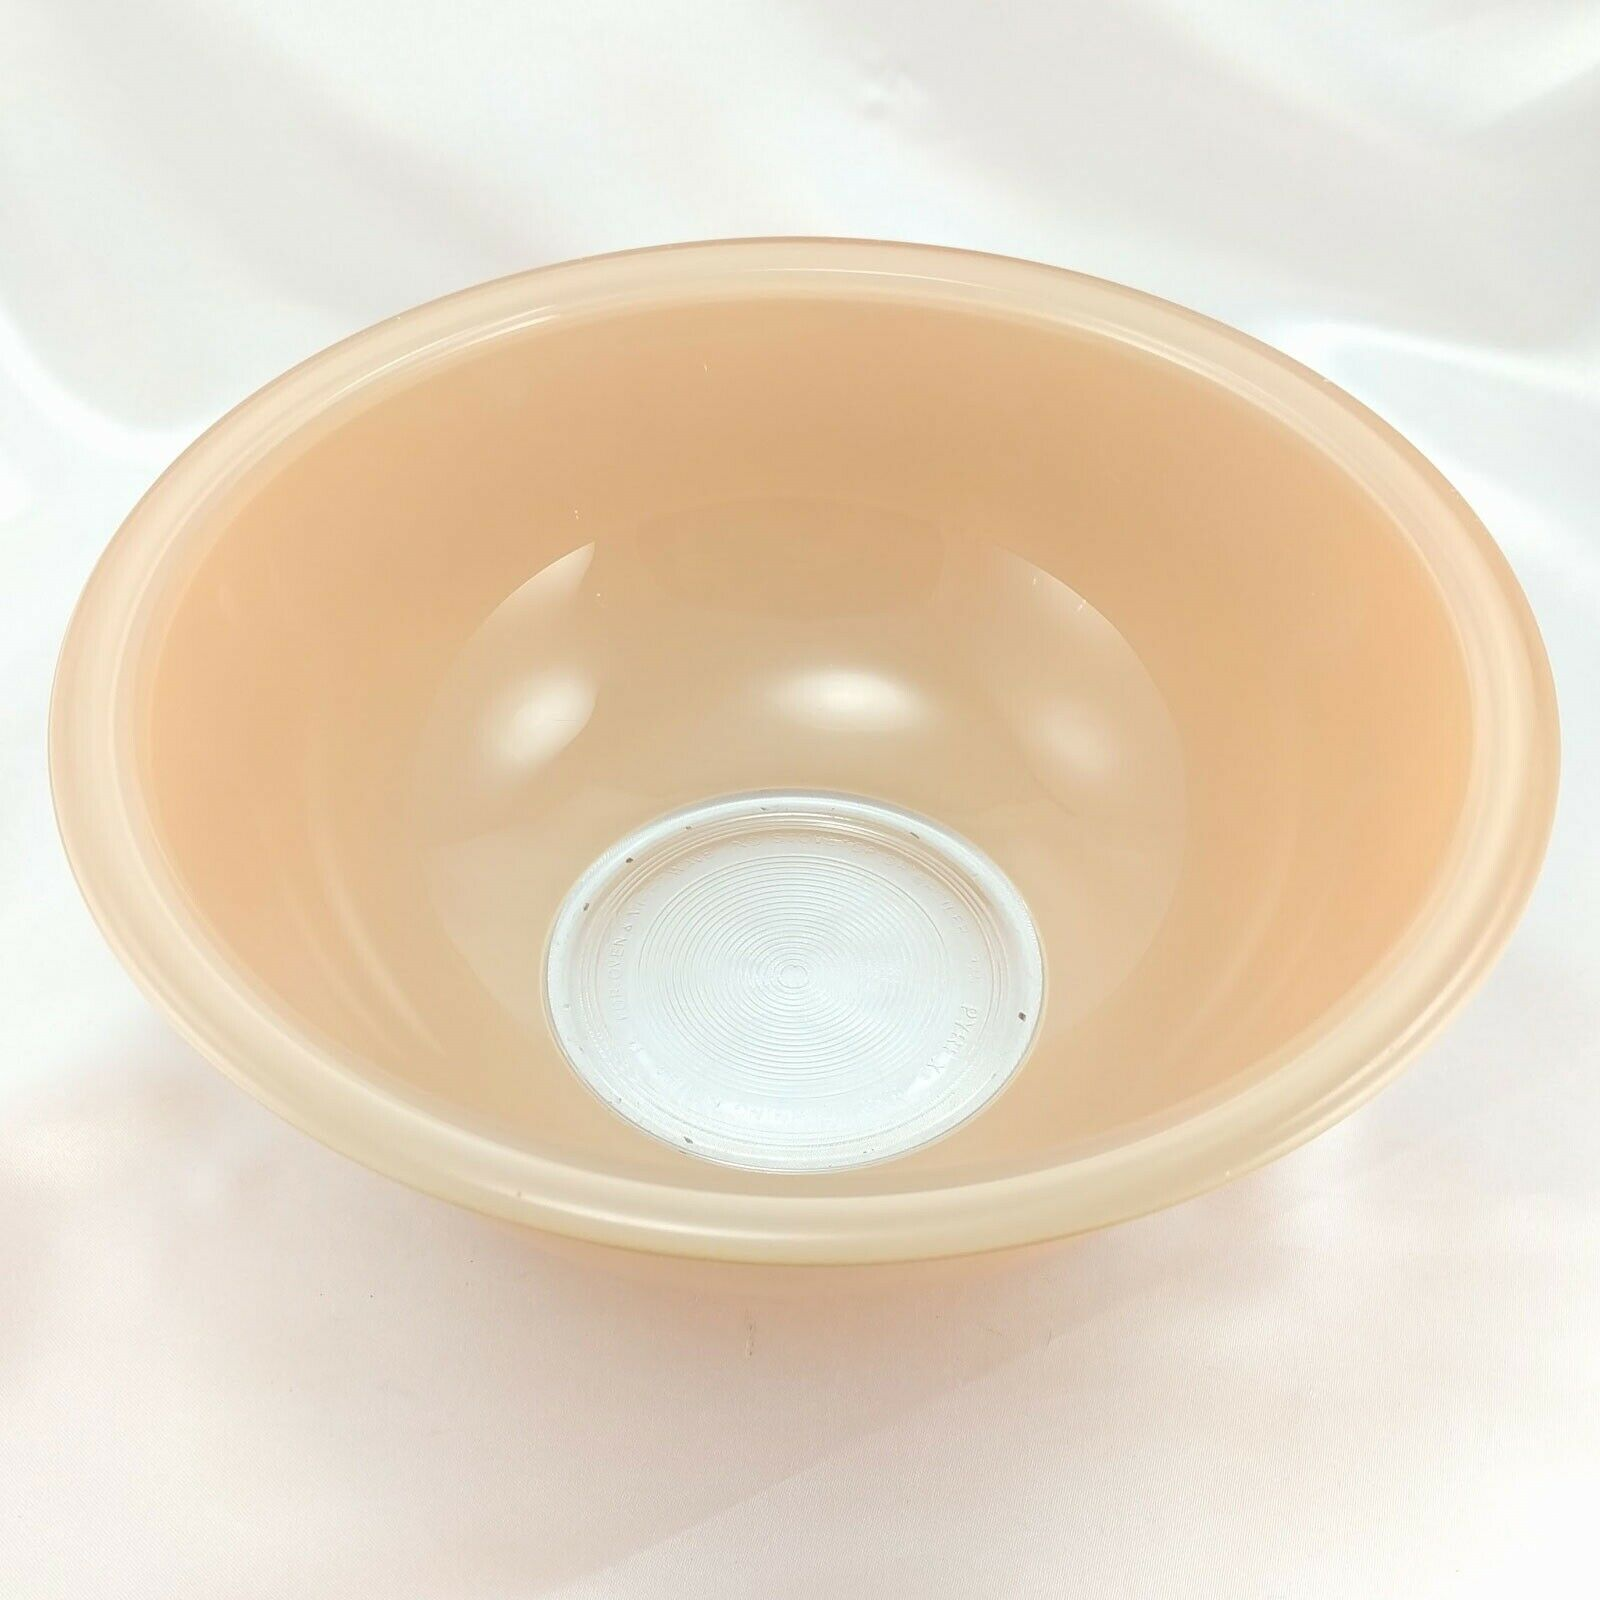 Pyrex 325 Clear Bottom Bowl Beige & Tan Vintage 2½ qt Serving Made in the USA image 2